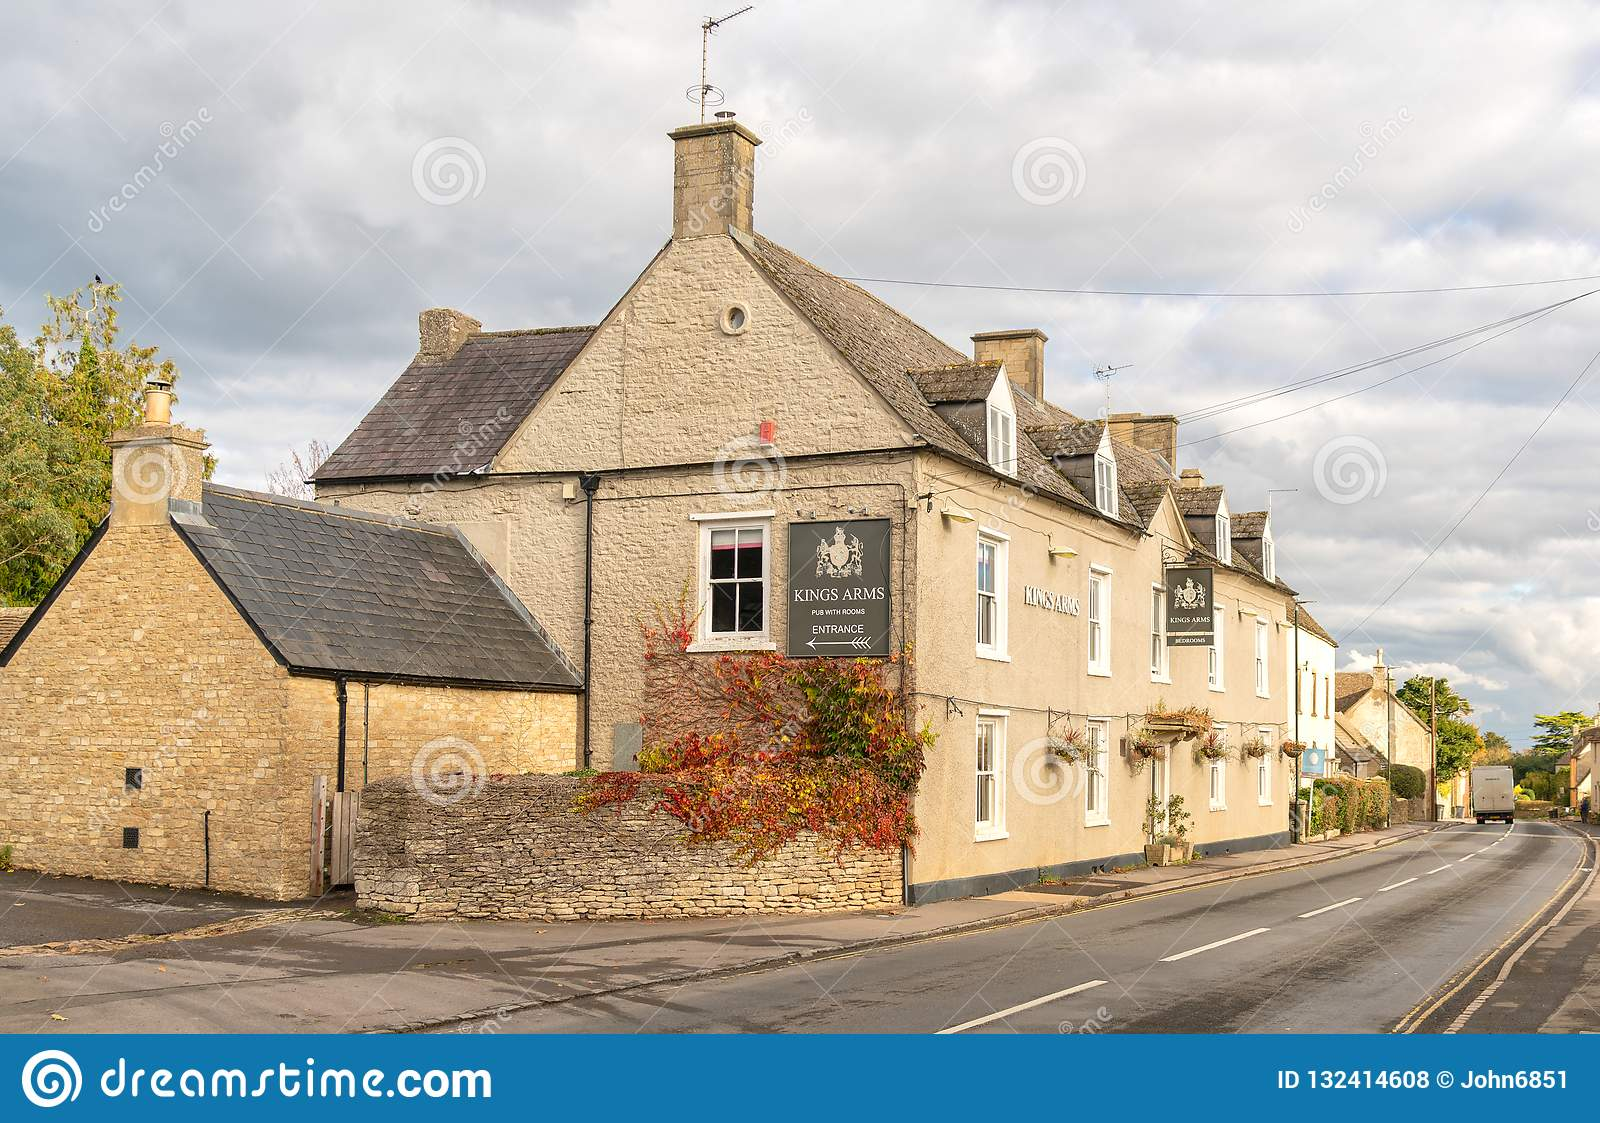 The Kings Arms public house in Didmarton, The Cotswolds, England